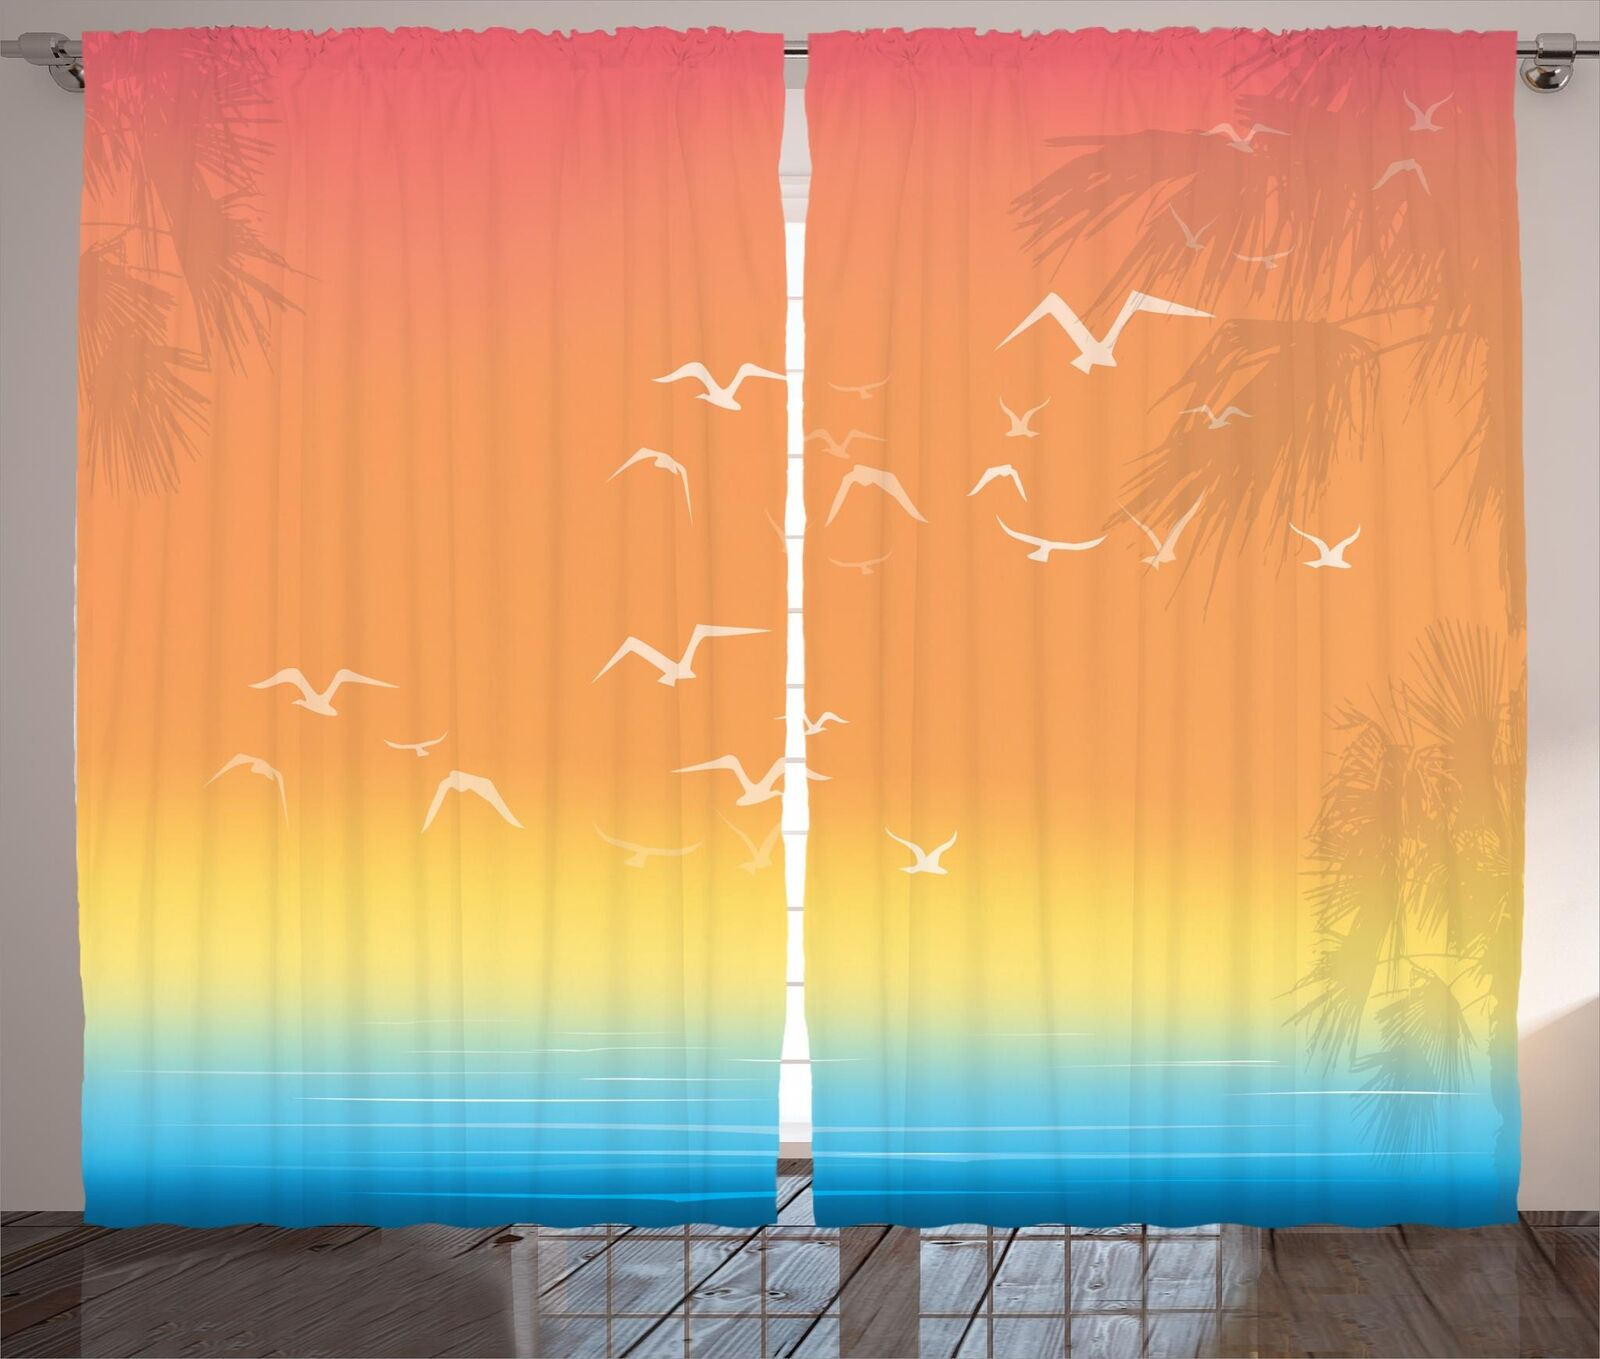 Seagulls Curtains 2 Panel Set for Decor 5 Dimensiones Available Window Drapes